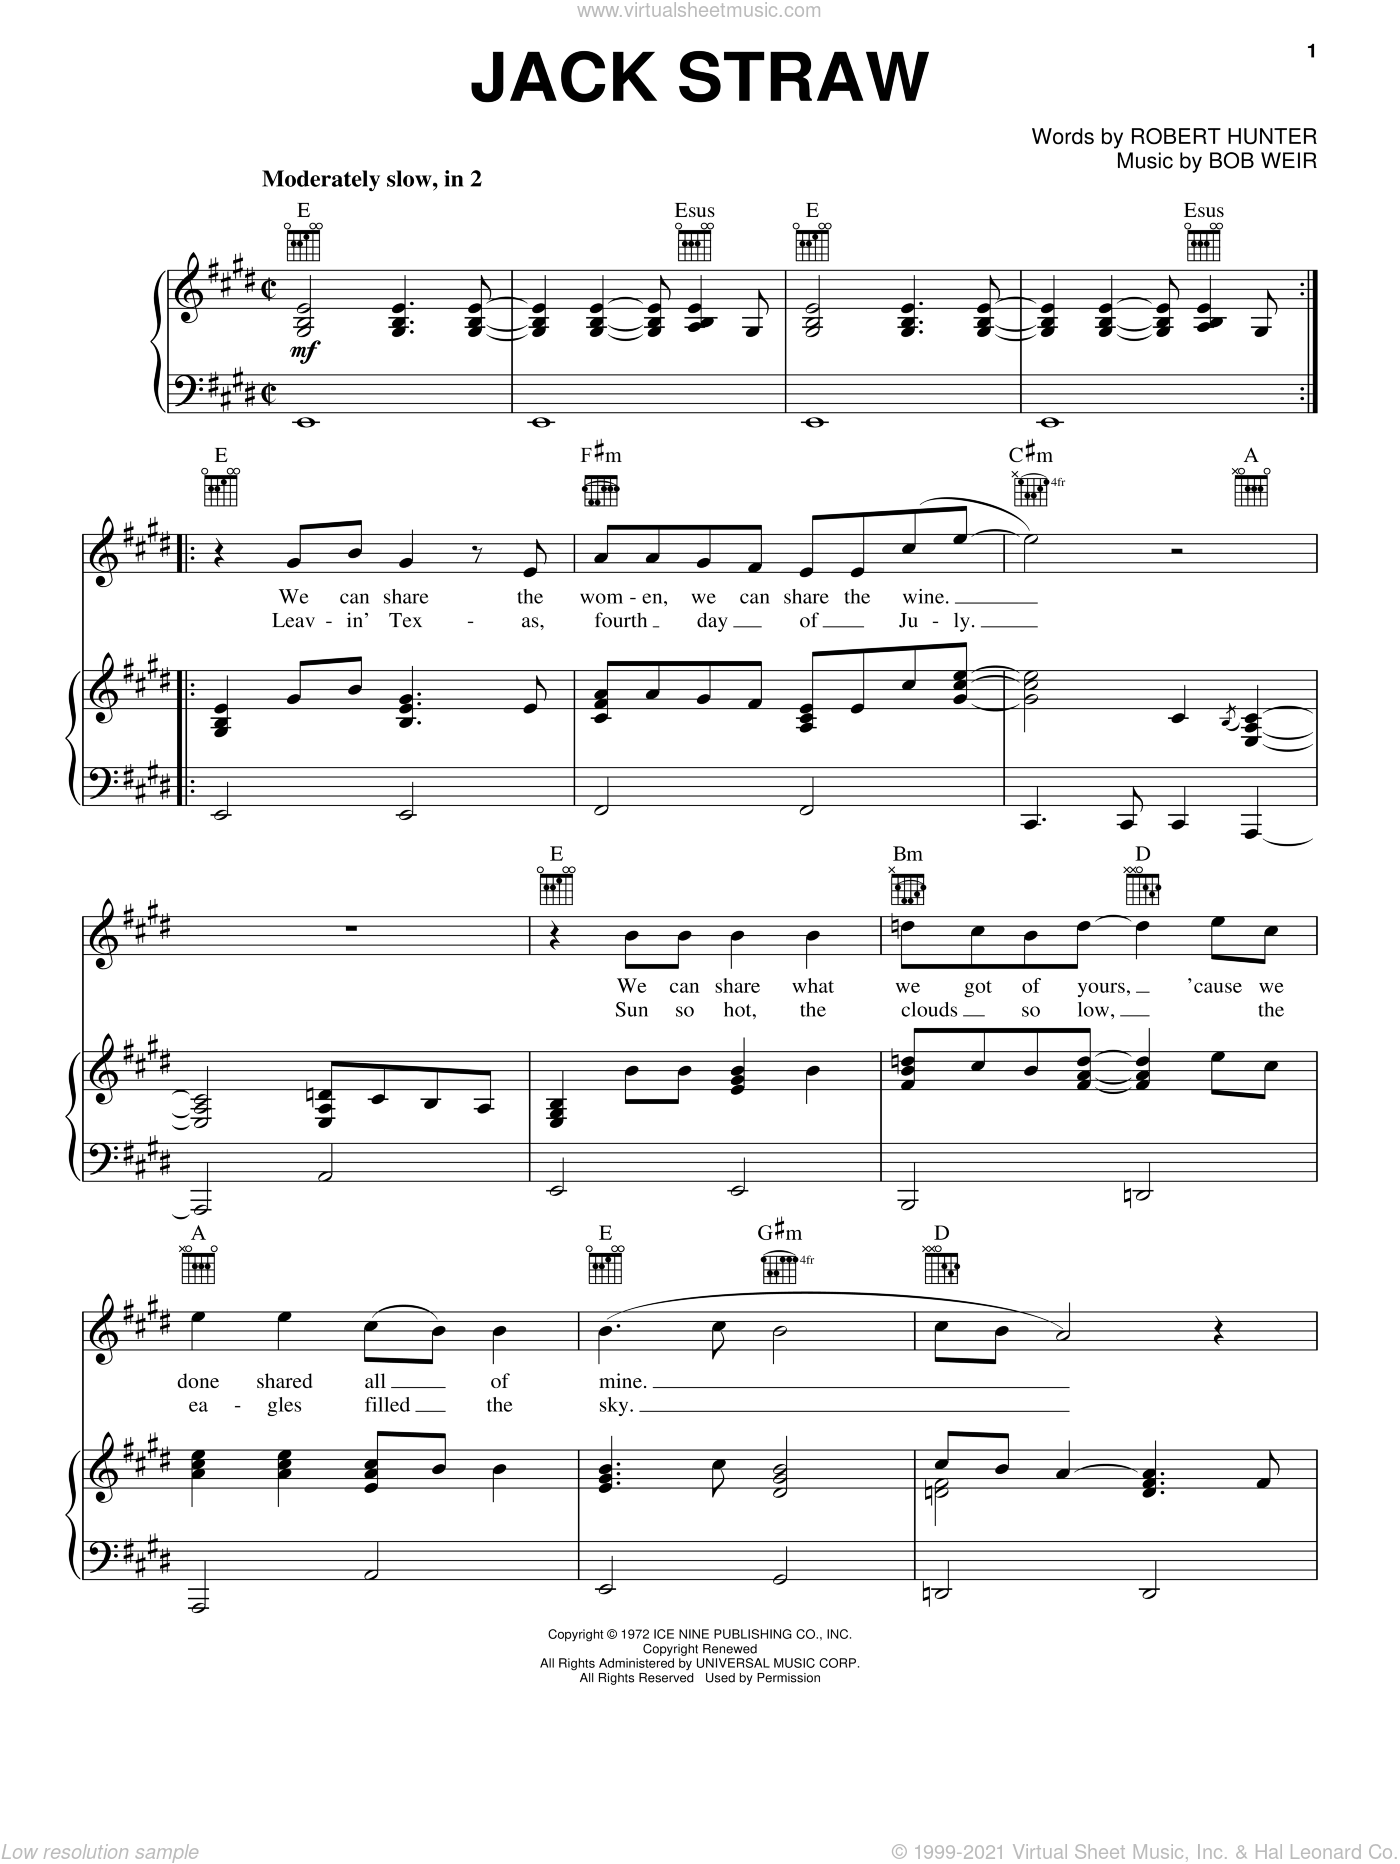 Jack Straw sheet music for voice, piano or guitar by Grateful Dead, Bob Weir and Robert Hunter, intermediate skill level